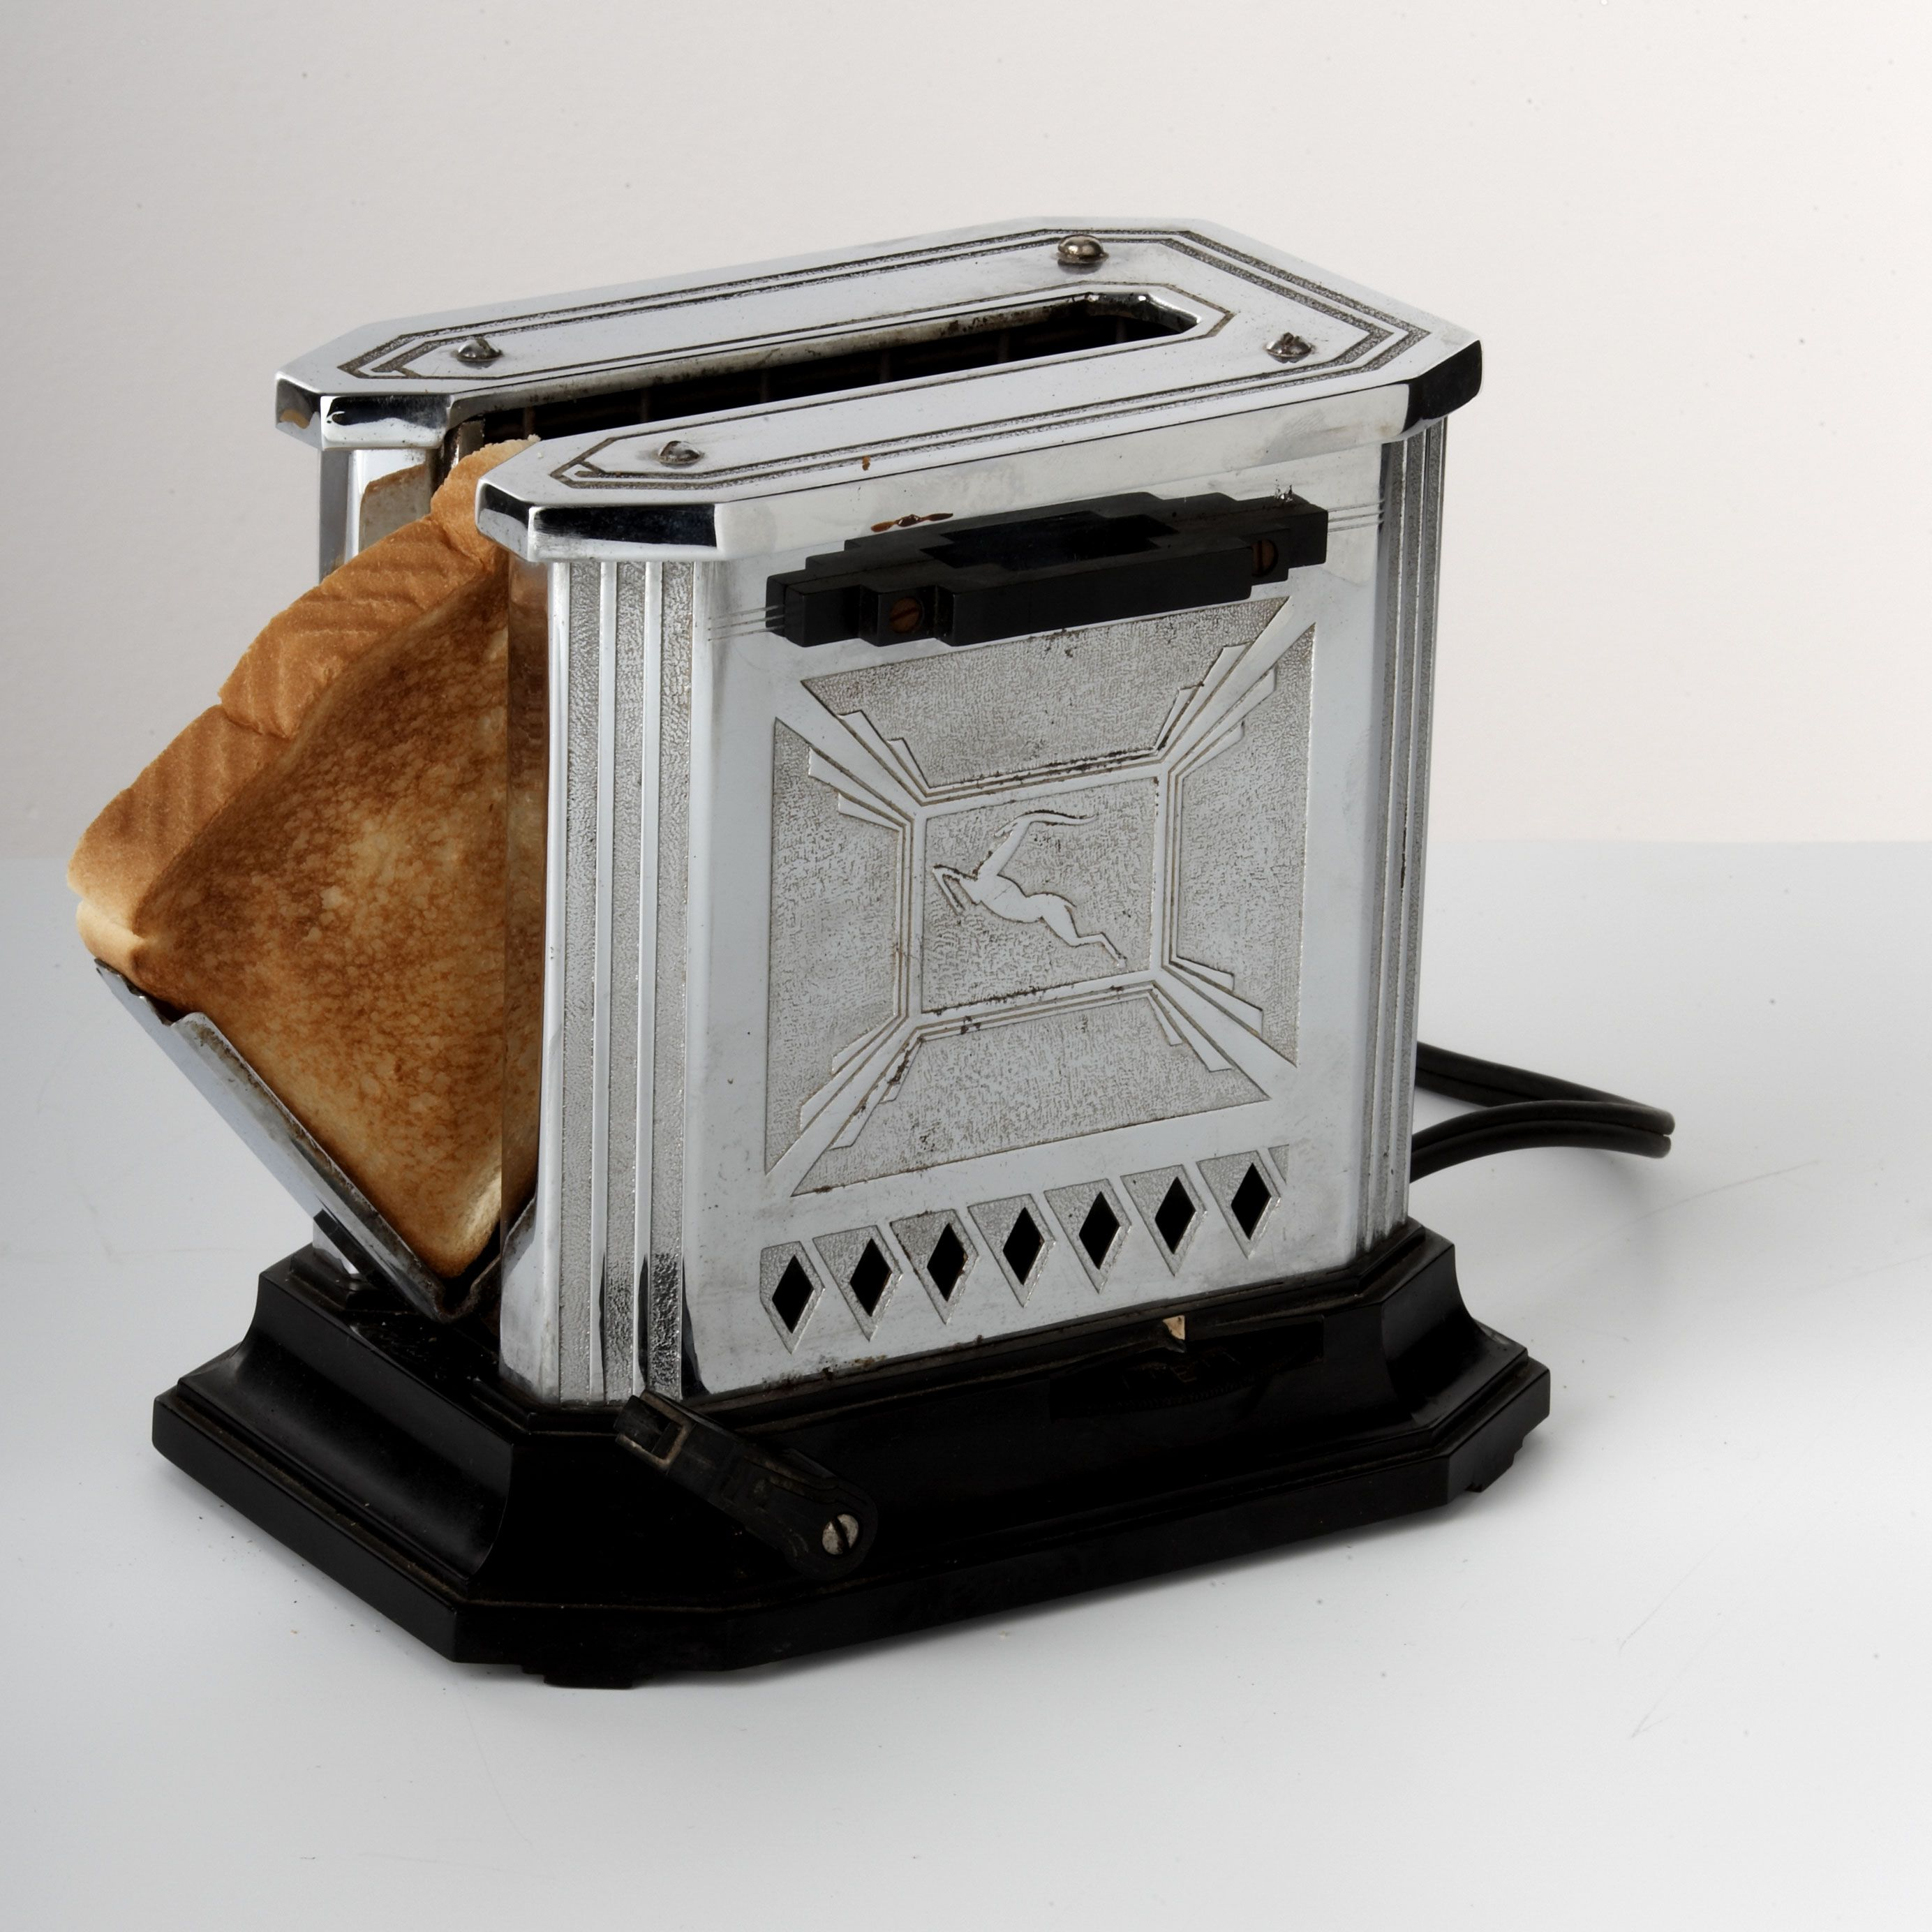 Information On The Toaster ~ Hotpoint gazelle toaster from s generalelectric